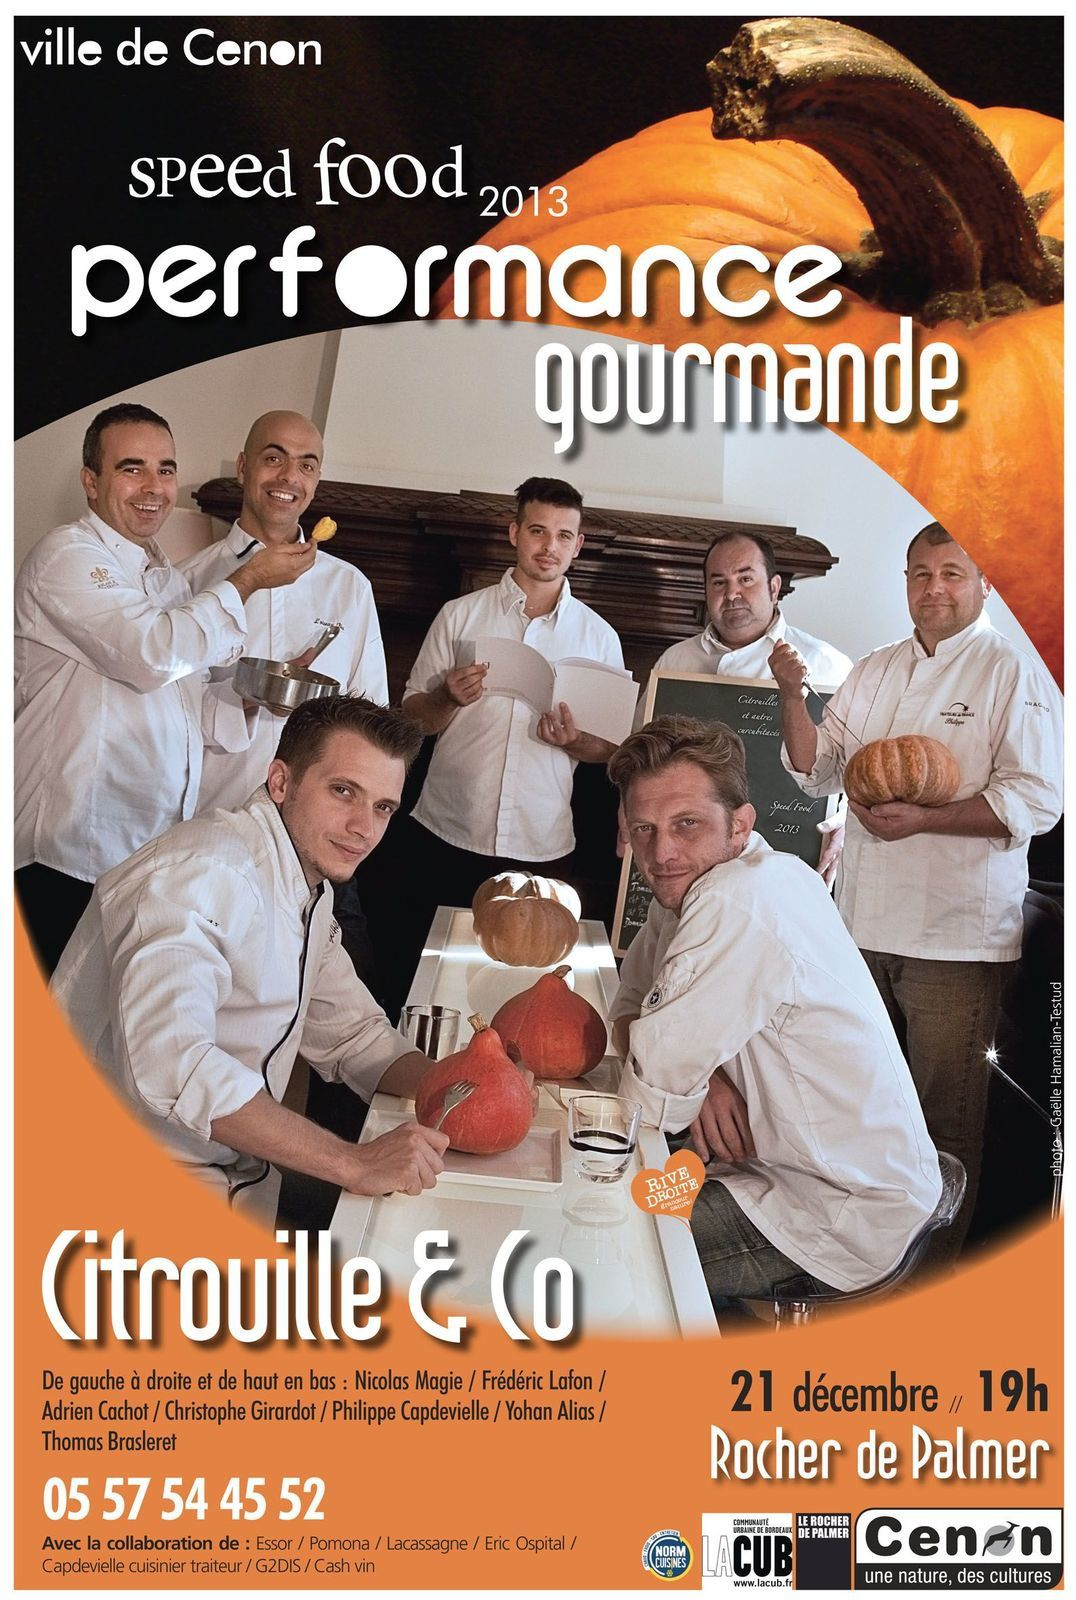 Performance gourmande Speed food à Cenon